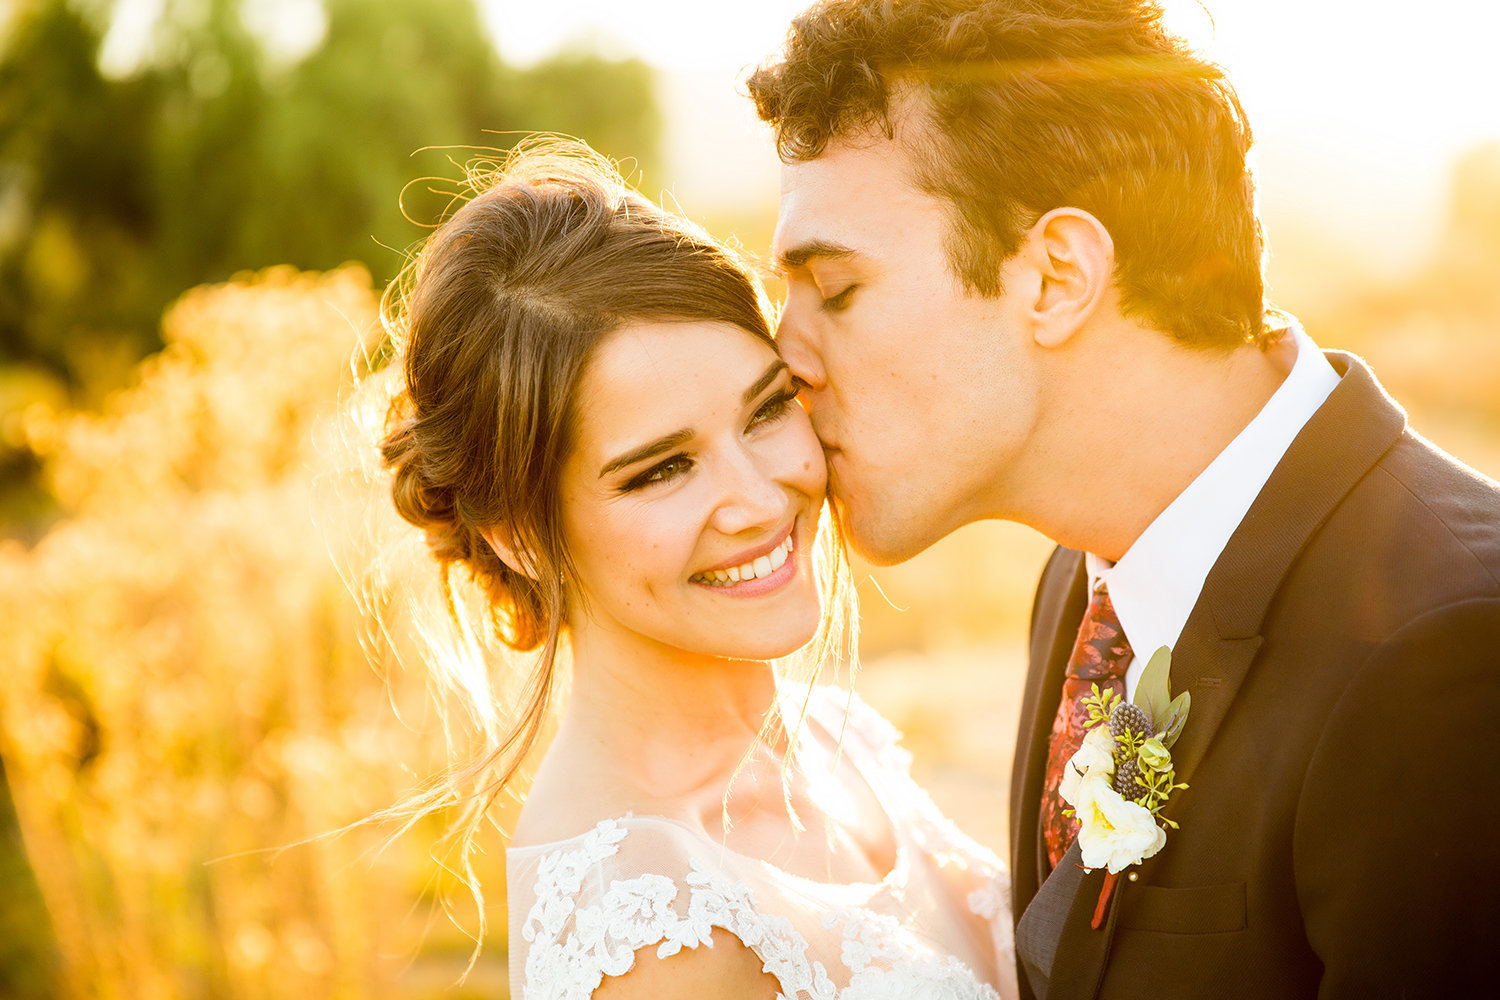 Groom Kissing Bride on the Cheek at Sunset